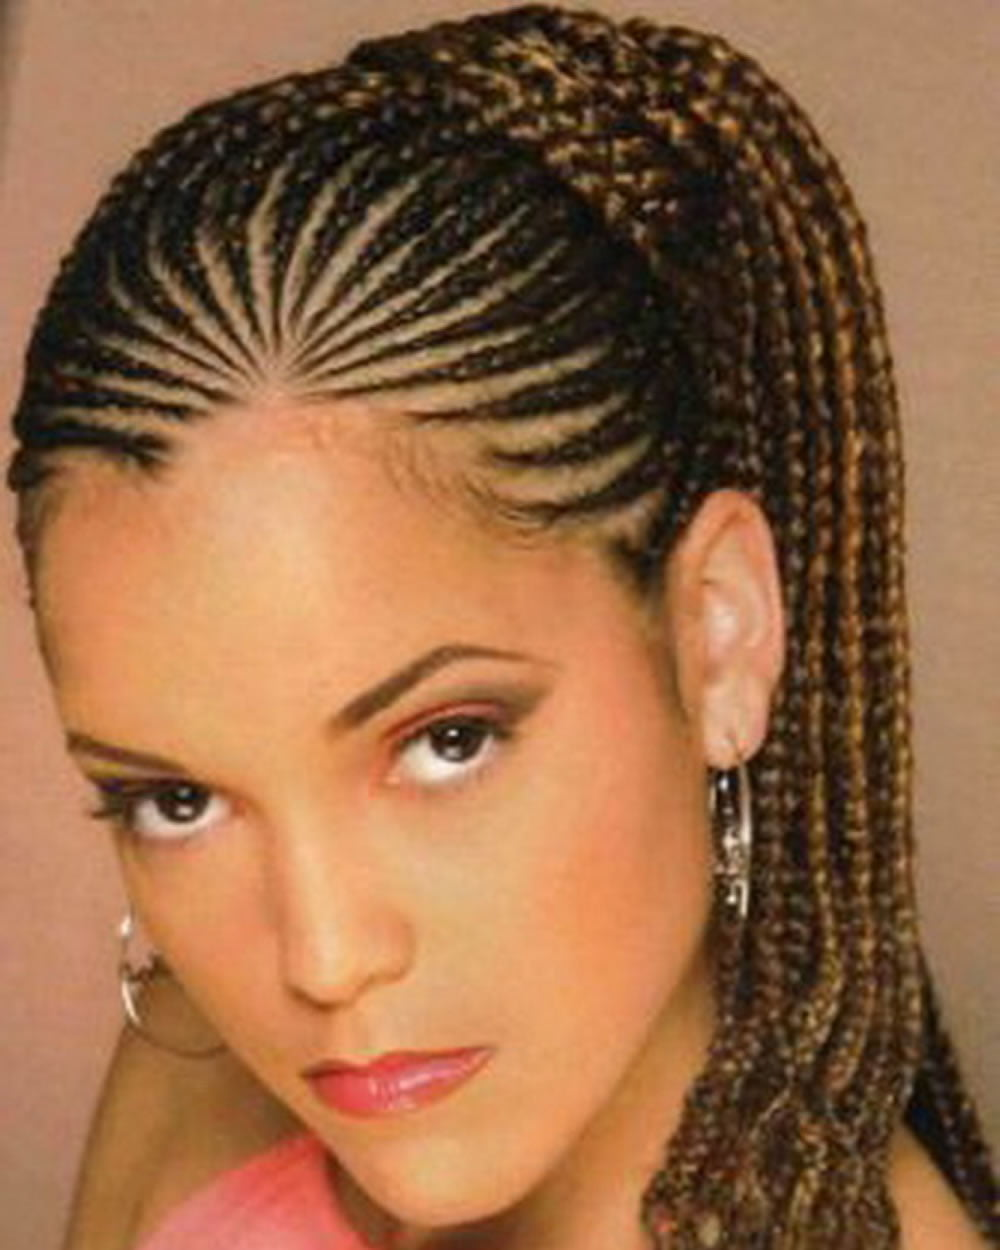 Cornrow Hairstyles for Black Women 2018-2019 - Page 2 - HAIRSTYLES